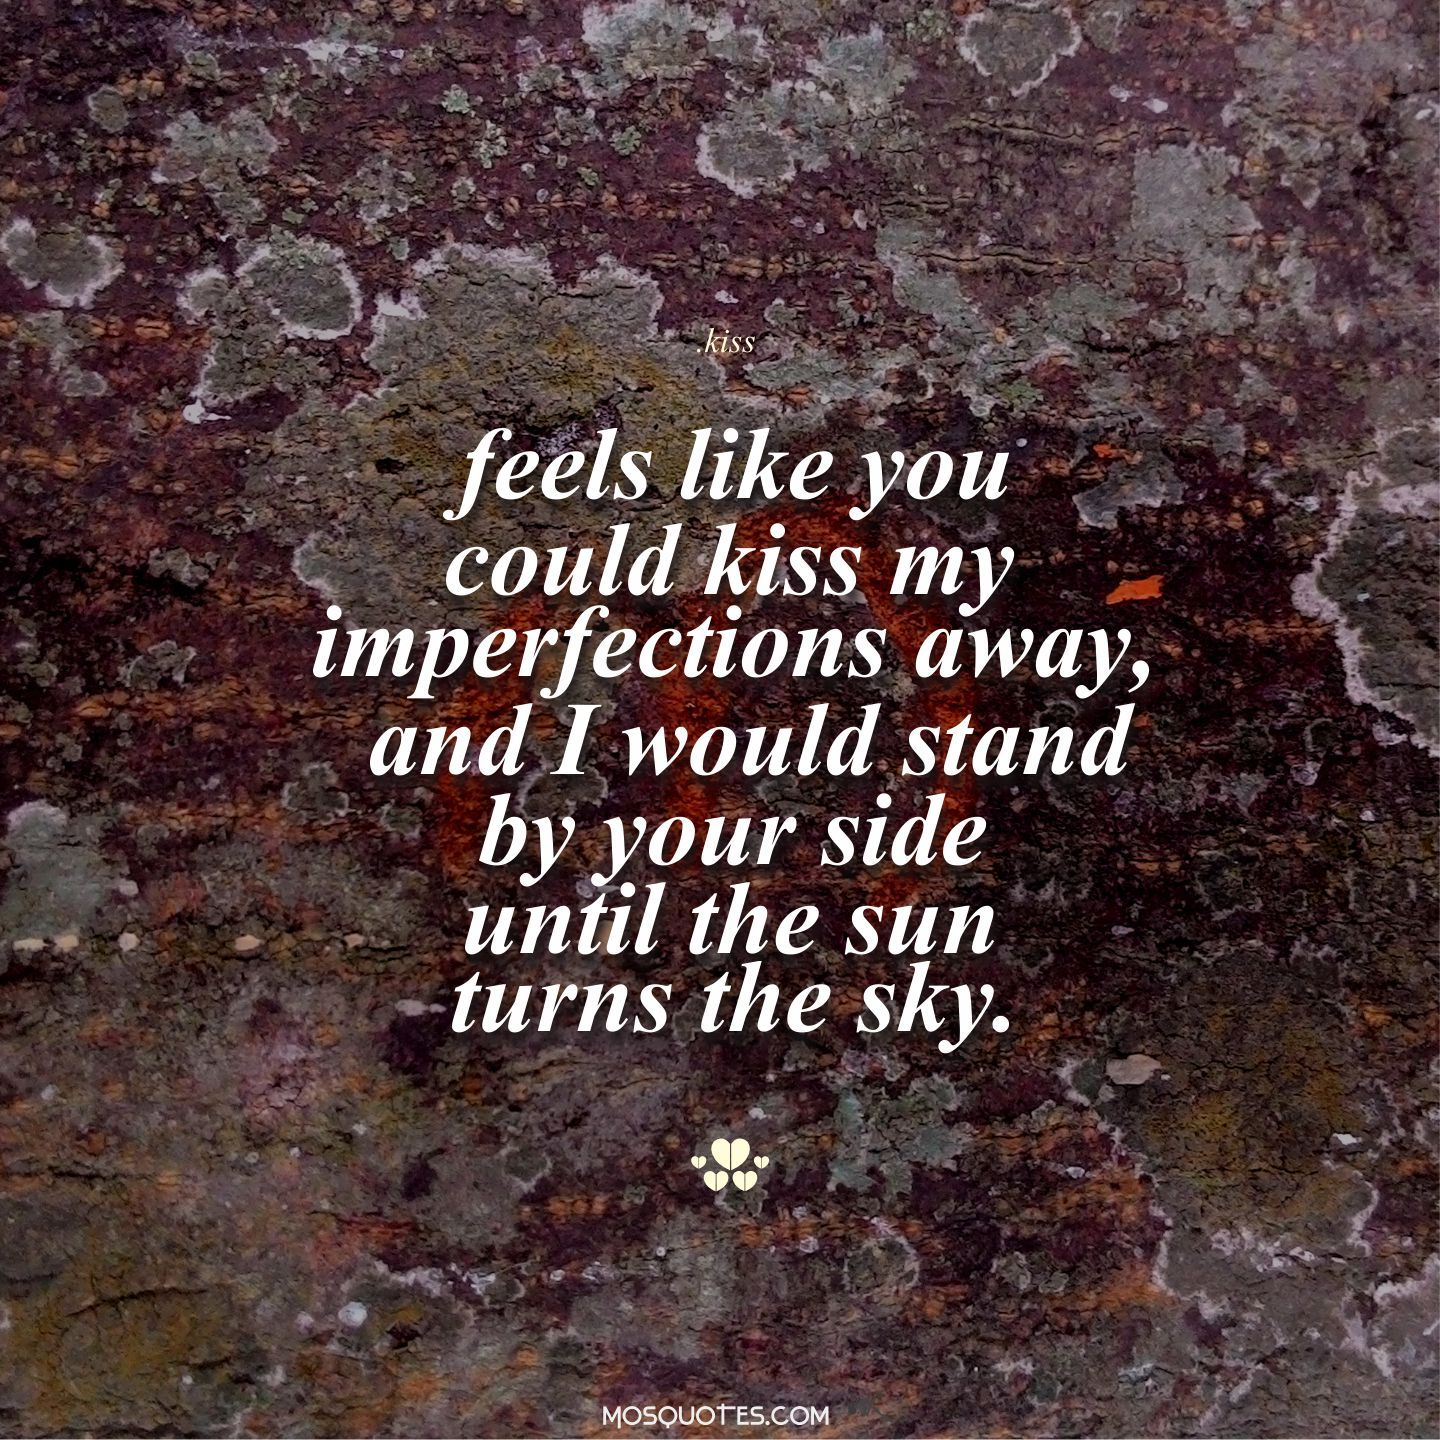 Cute Emo Love Quotes Feels like you could kiss my imperfections awayAnd I would stand by